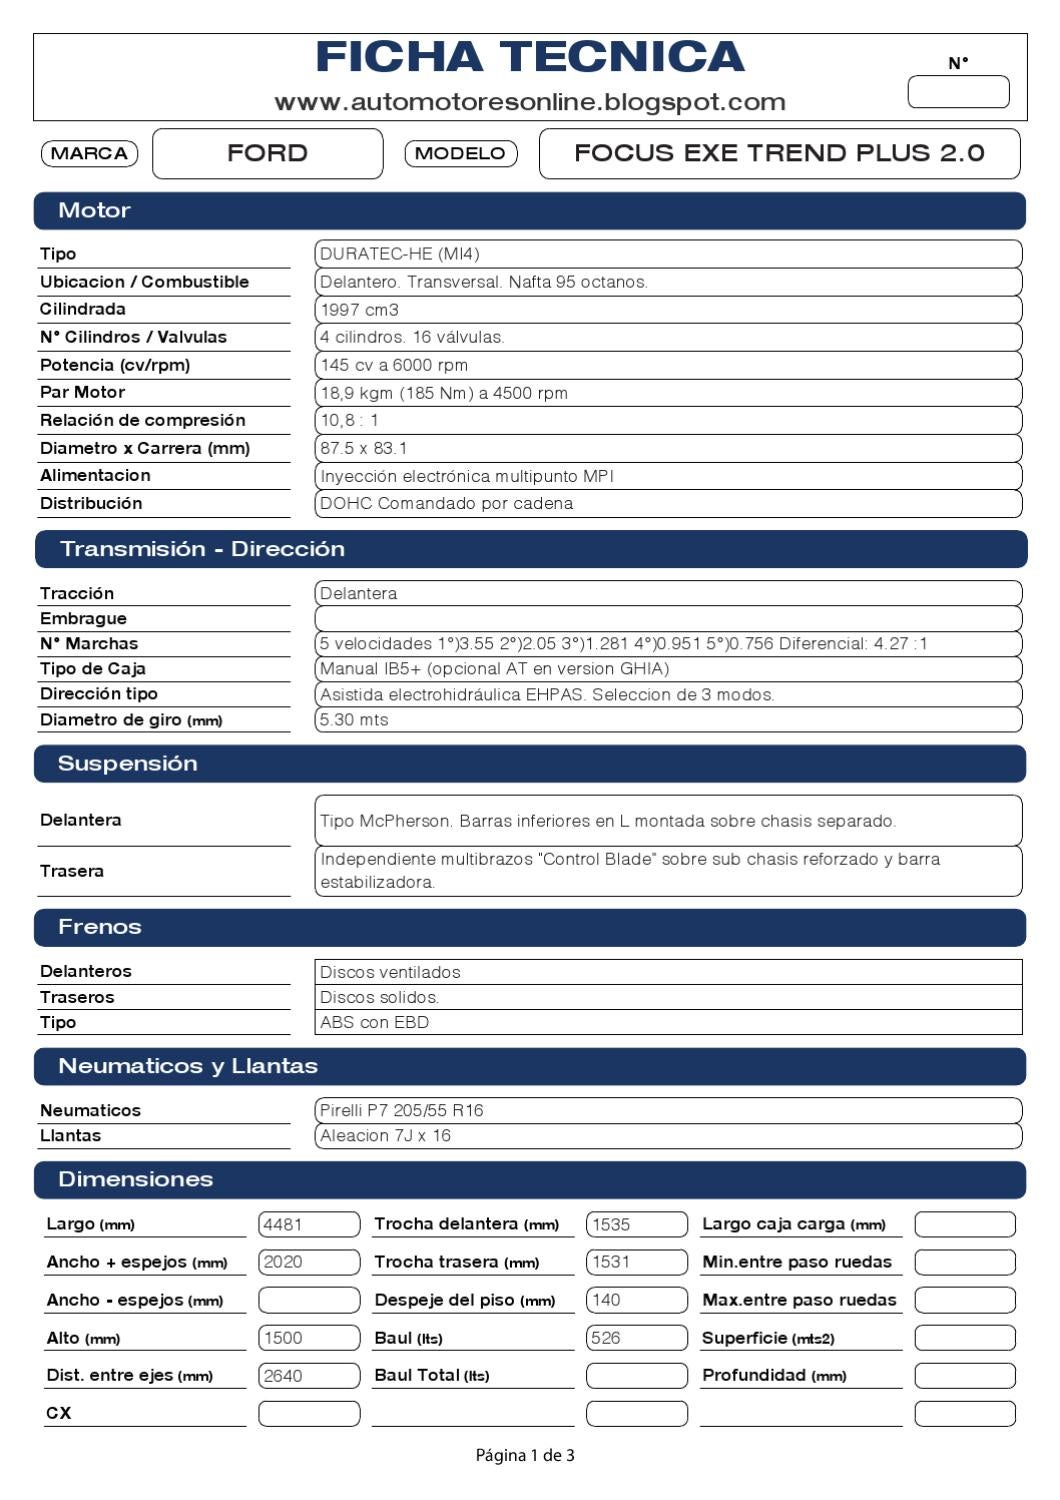 Ford Focus Exe Trend Plus 2 0 N By Automotores Online